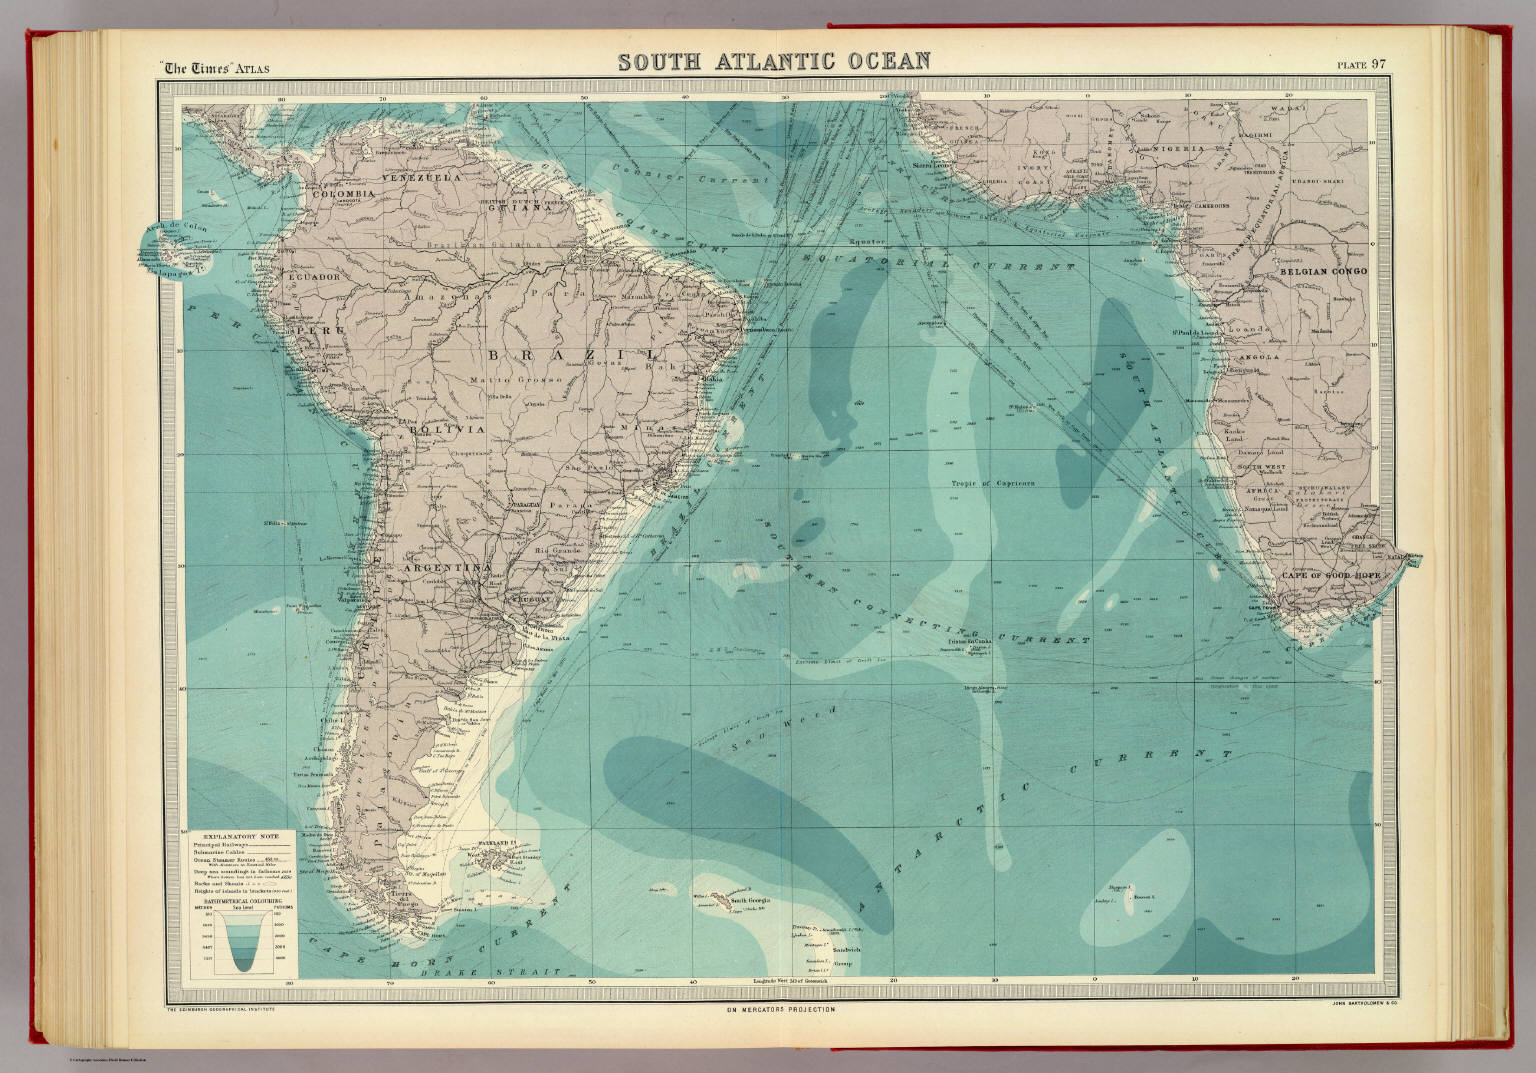 South Atlantic Ocean David Rumsey Historical Map Collection